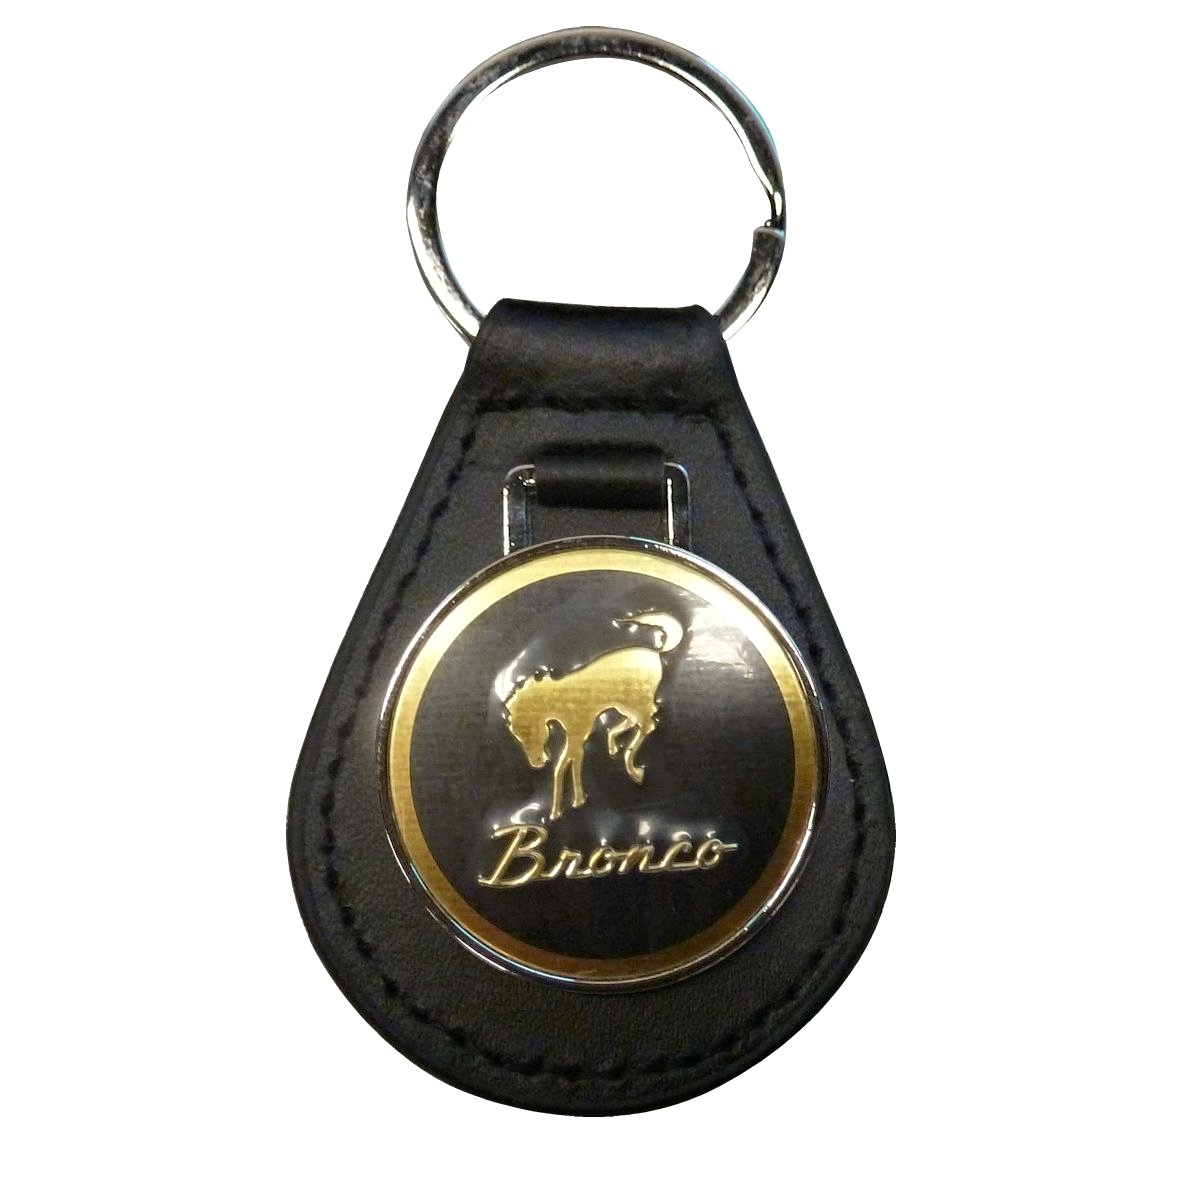 1966-1996 Ford Bronco Leather Key Chain Bronco